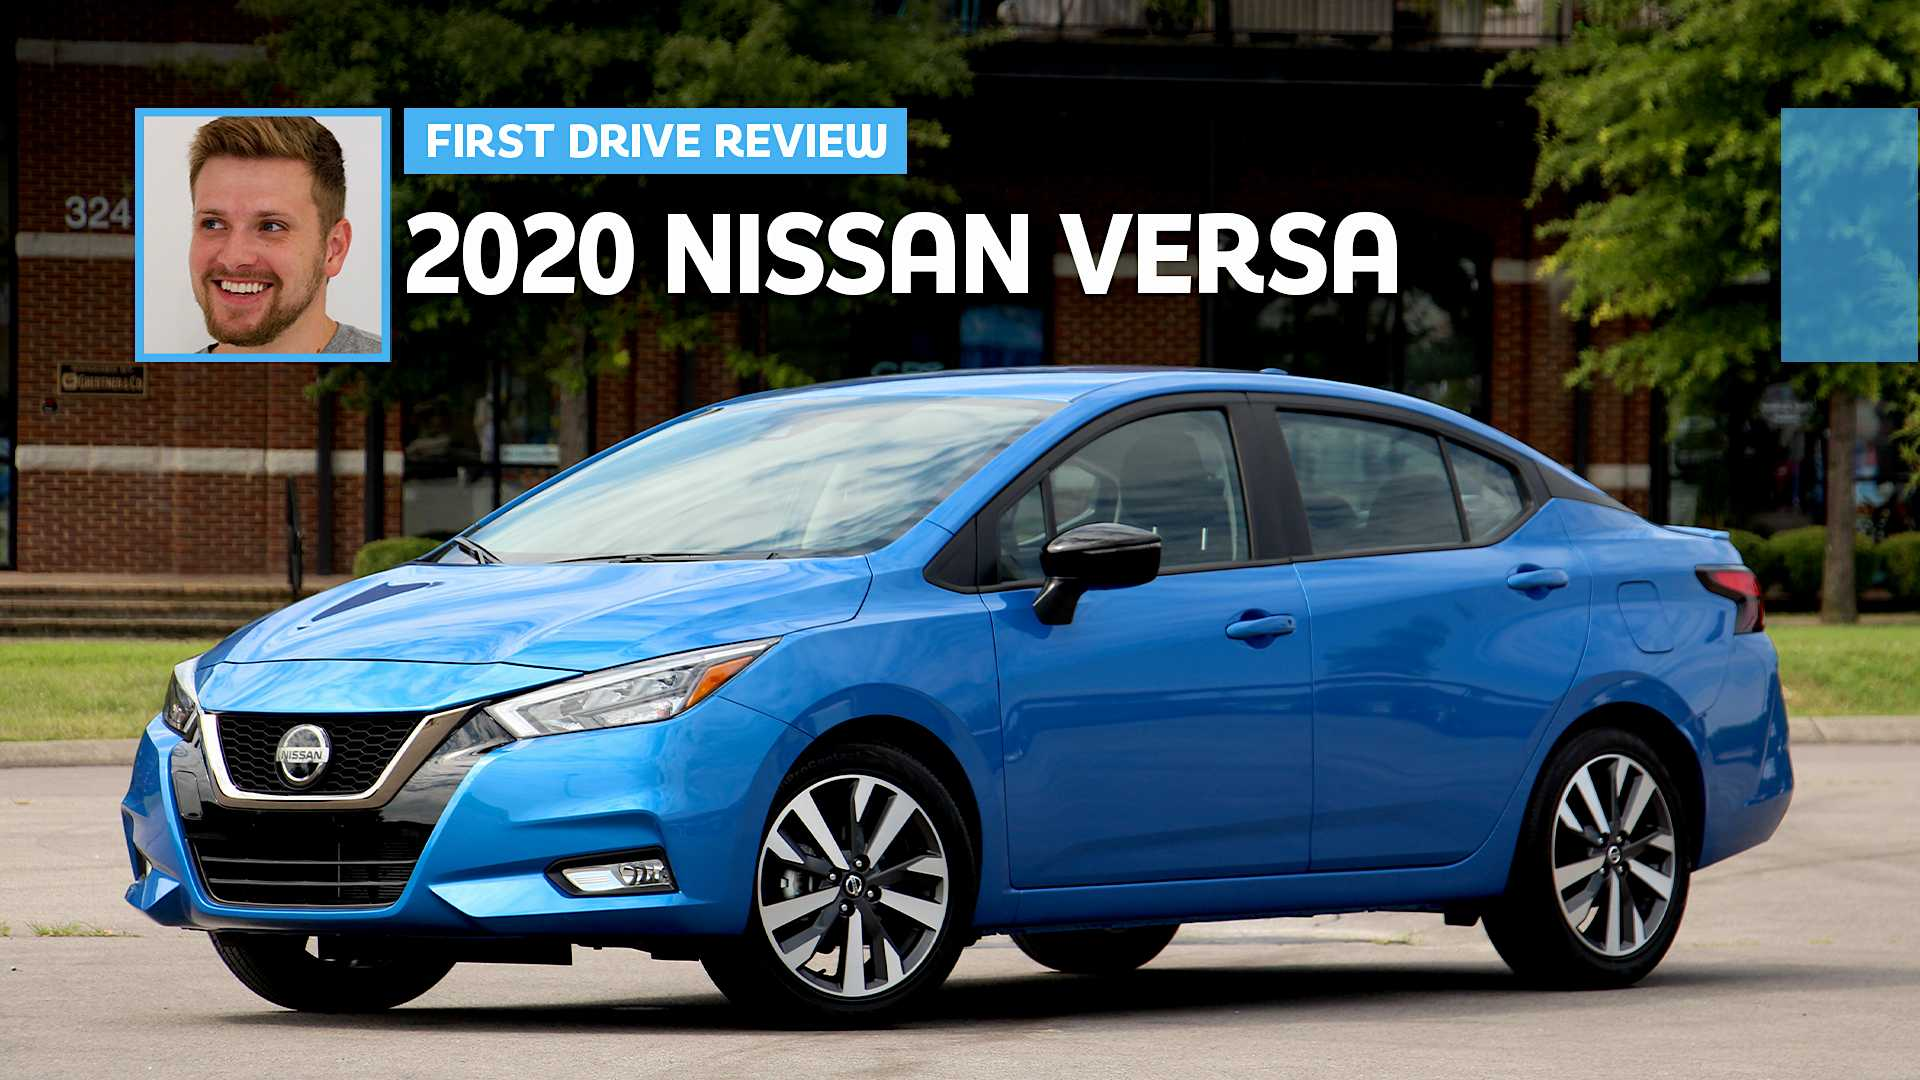 2020 Nissan Versa First Drive Safety First